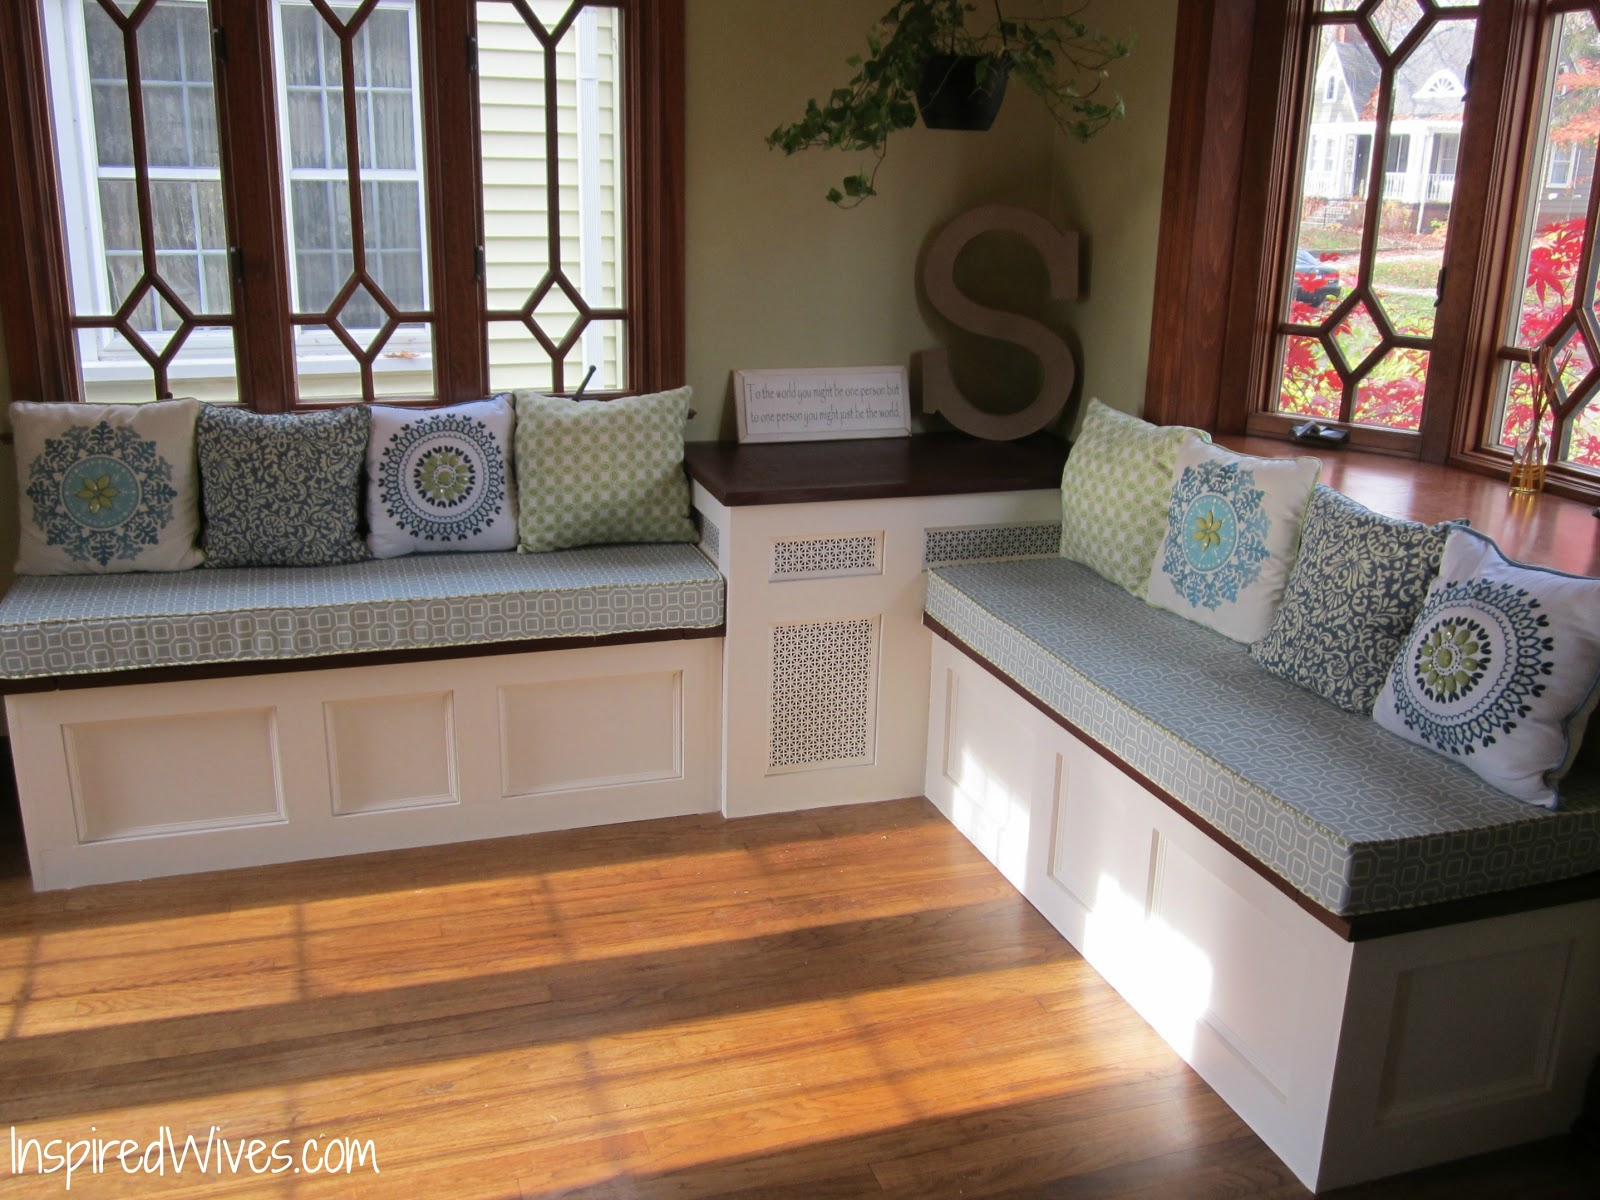 DIY Built in Kitchen Bench & Woodworking Ija: Free access Diy window bench plans